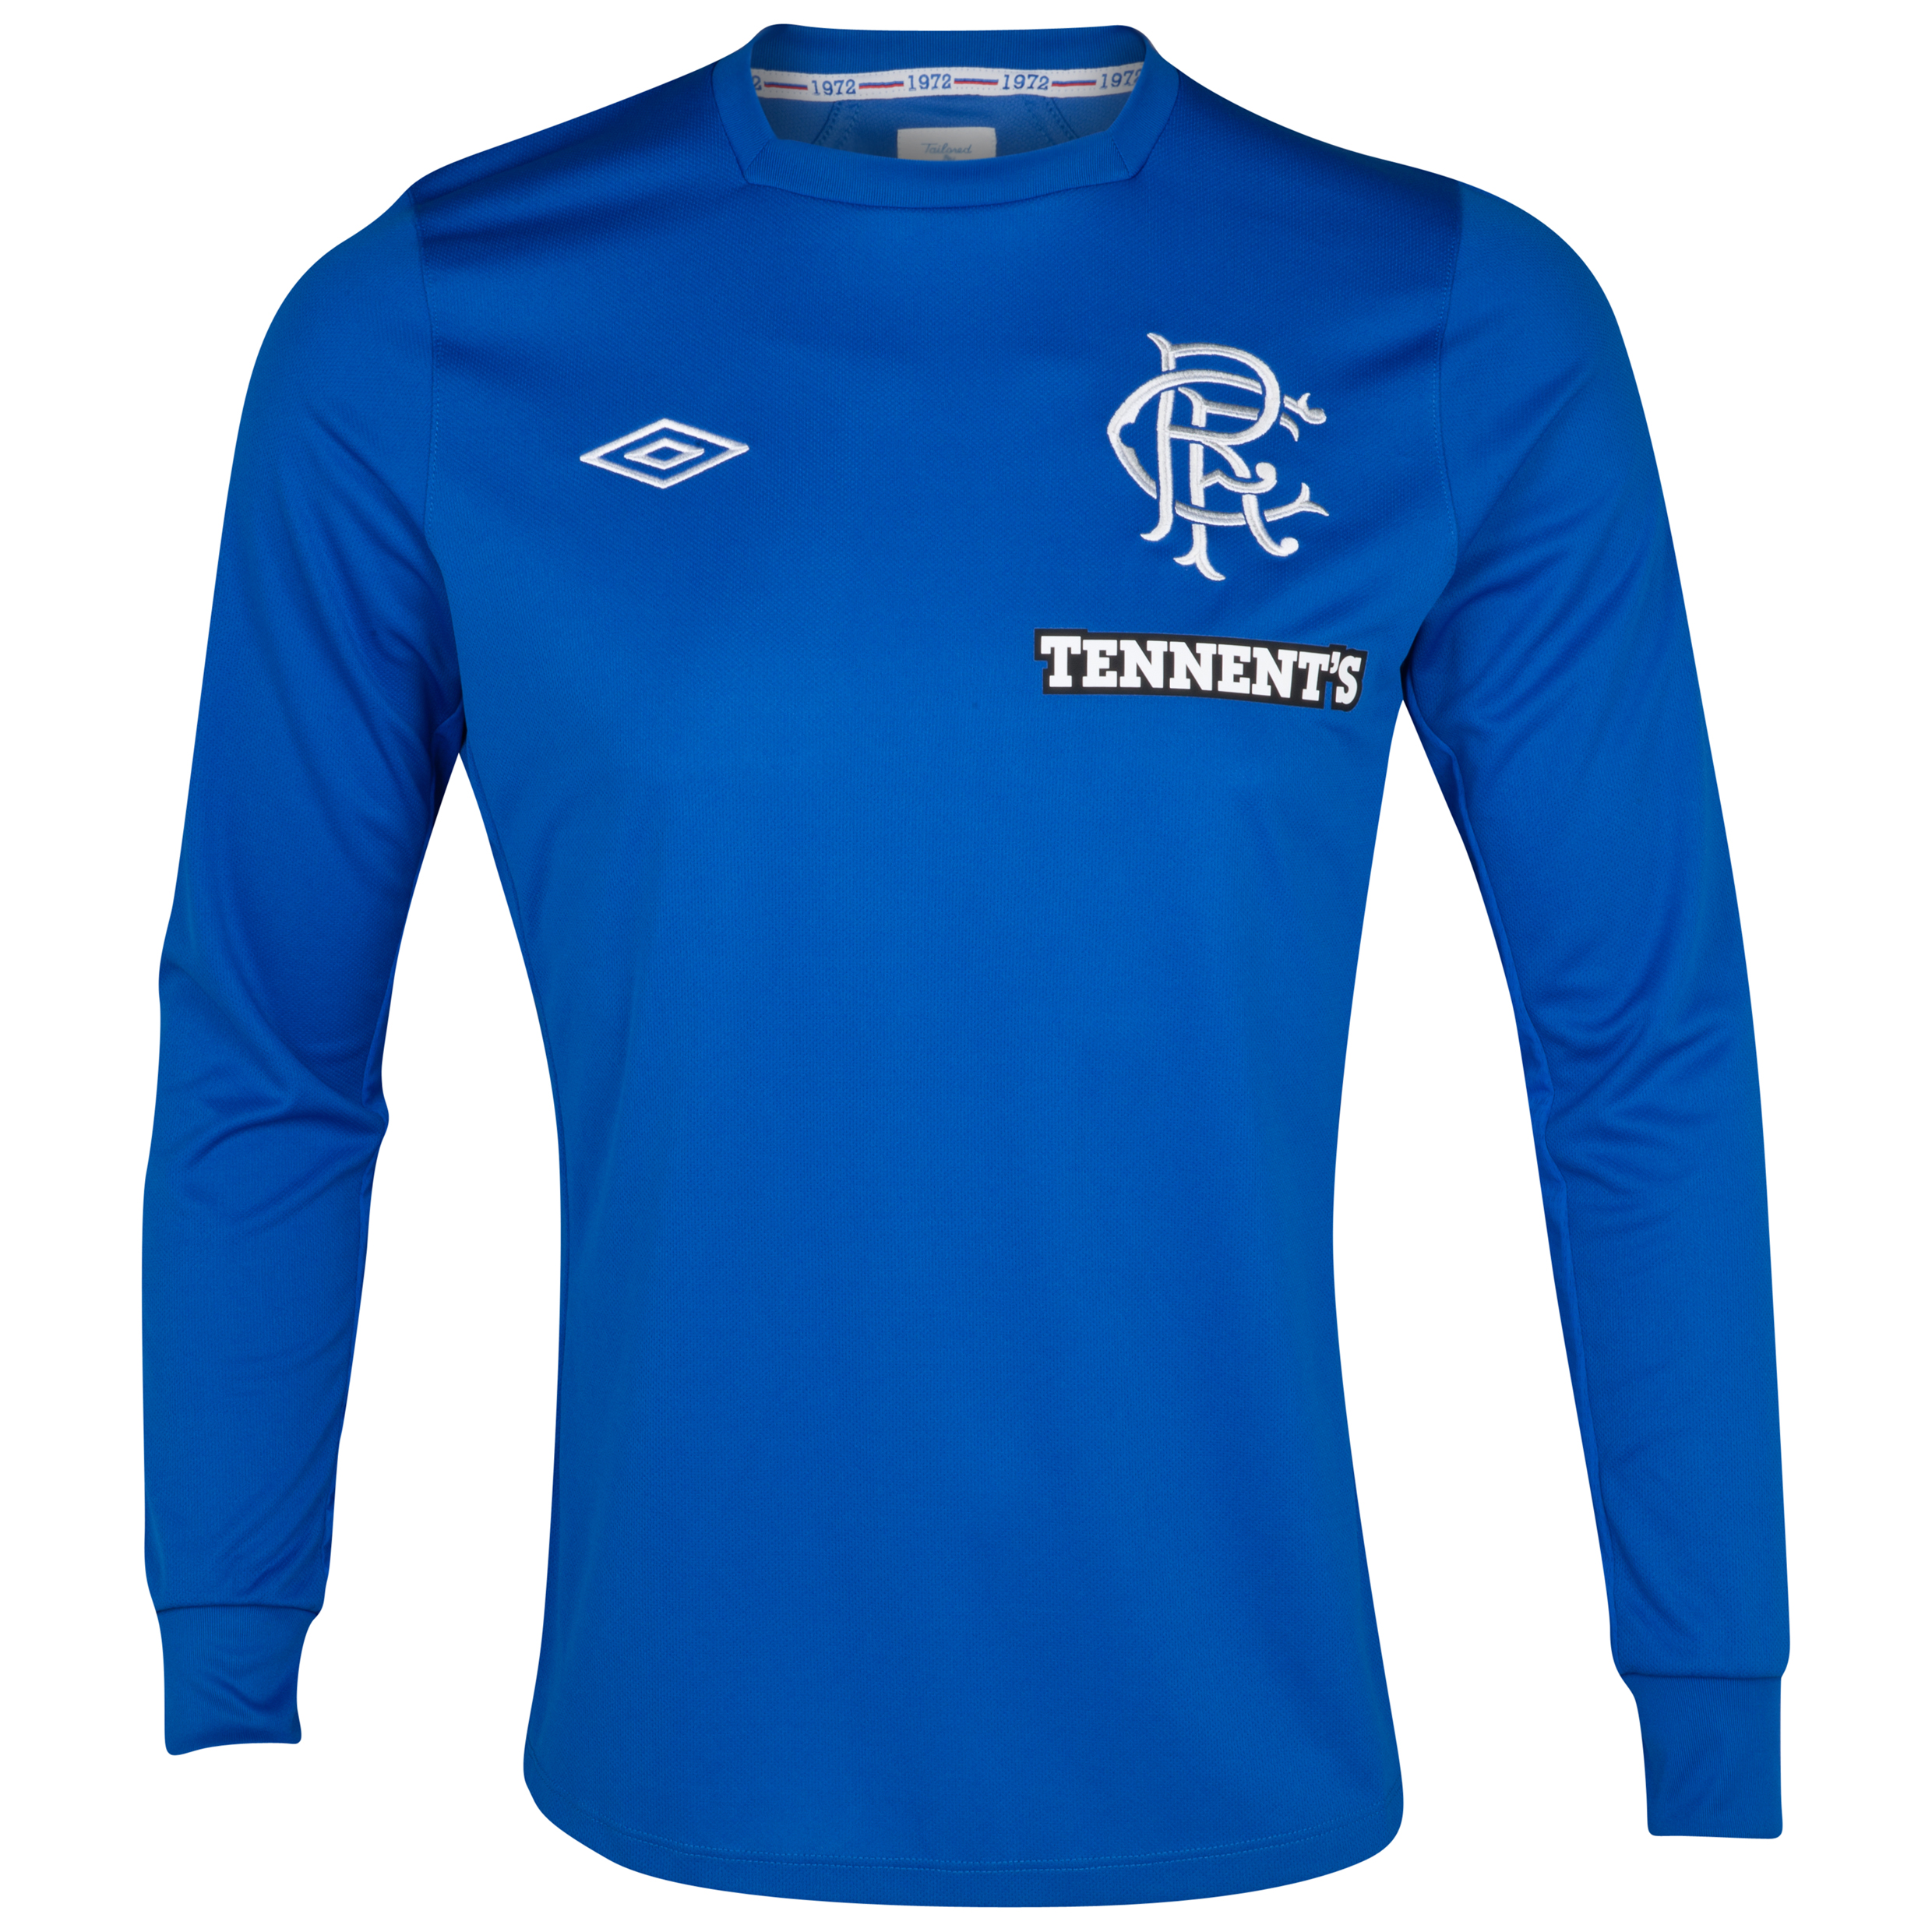 Glasgow Rangers Home Shirt 2012/13 - Long Sleeve